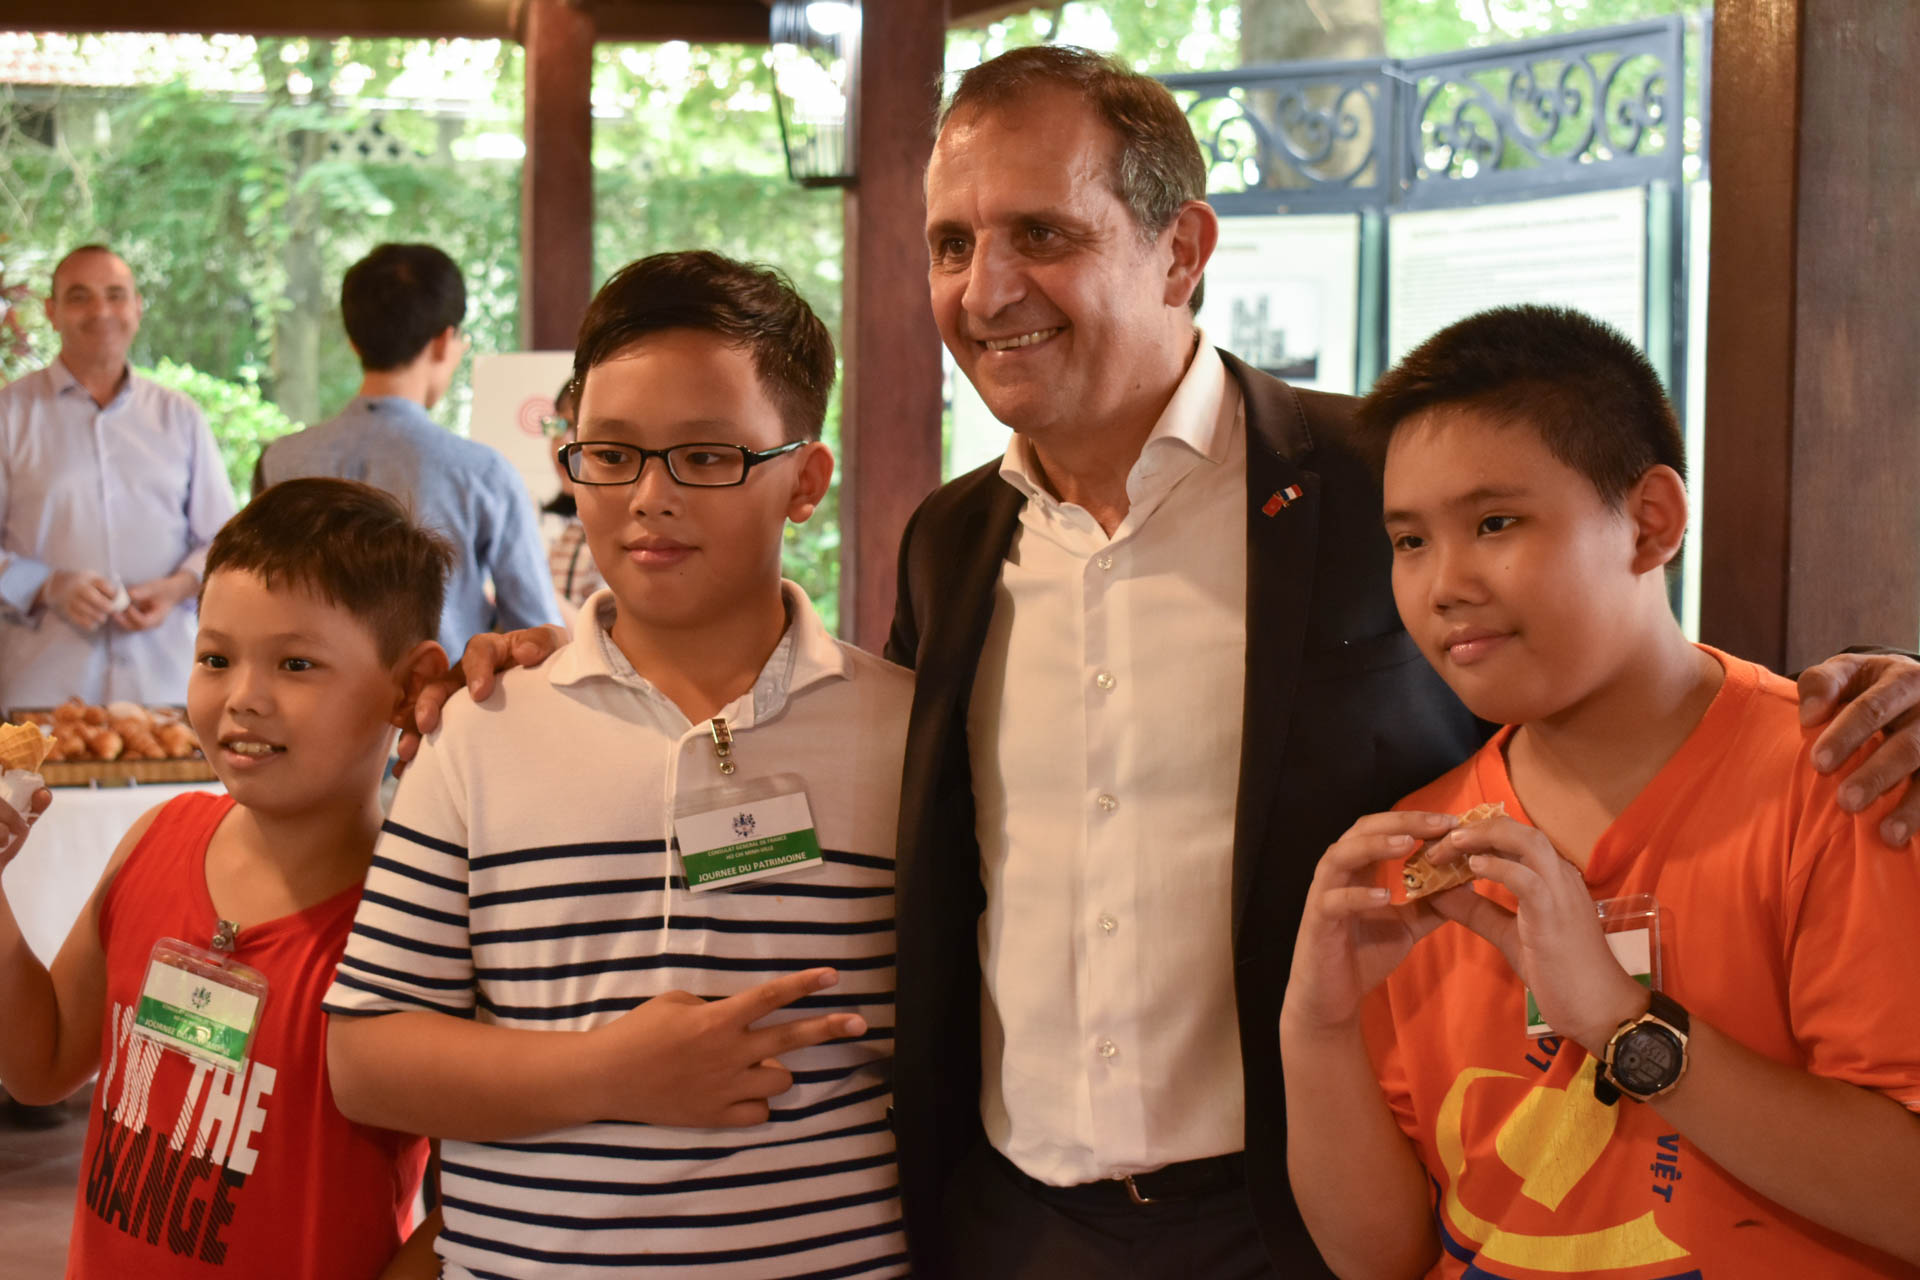 French Consul General in Ho Chi Minh City Vincent Floreani pose for photos with a group of visitors on the European Heritage Days, September 21, 2019. Photo: Tuan Son / Tuoi Tre News